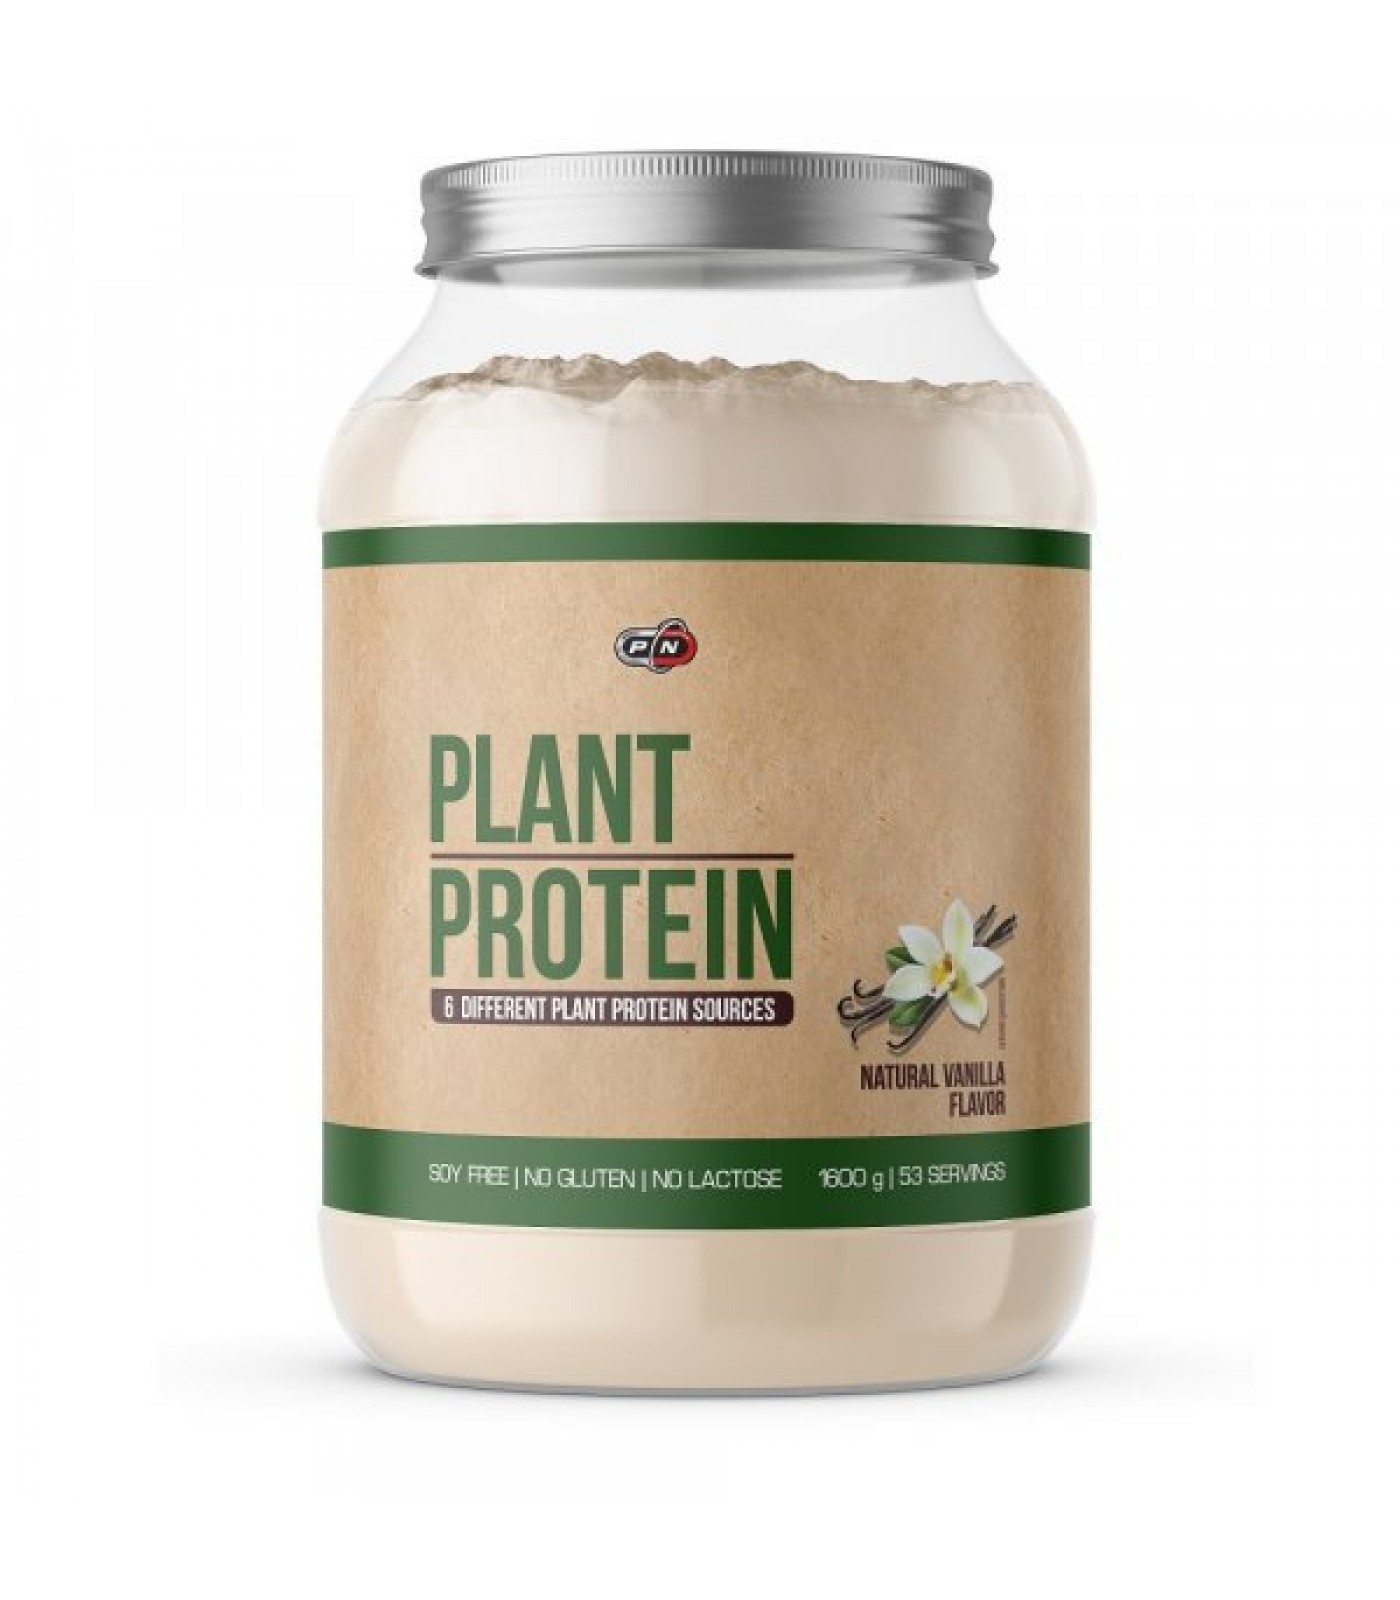 PURE NUTRITION - PLANT PROTEIN / 1600g